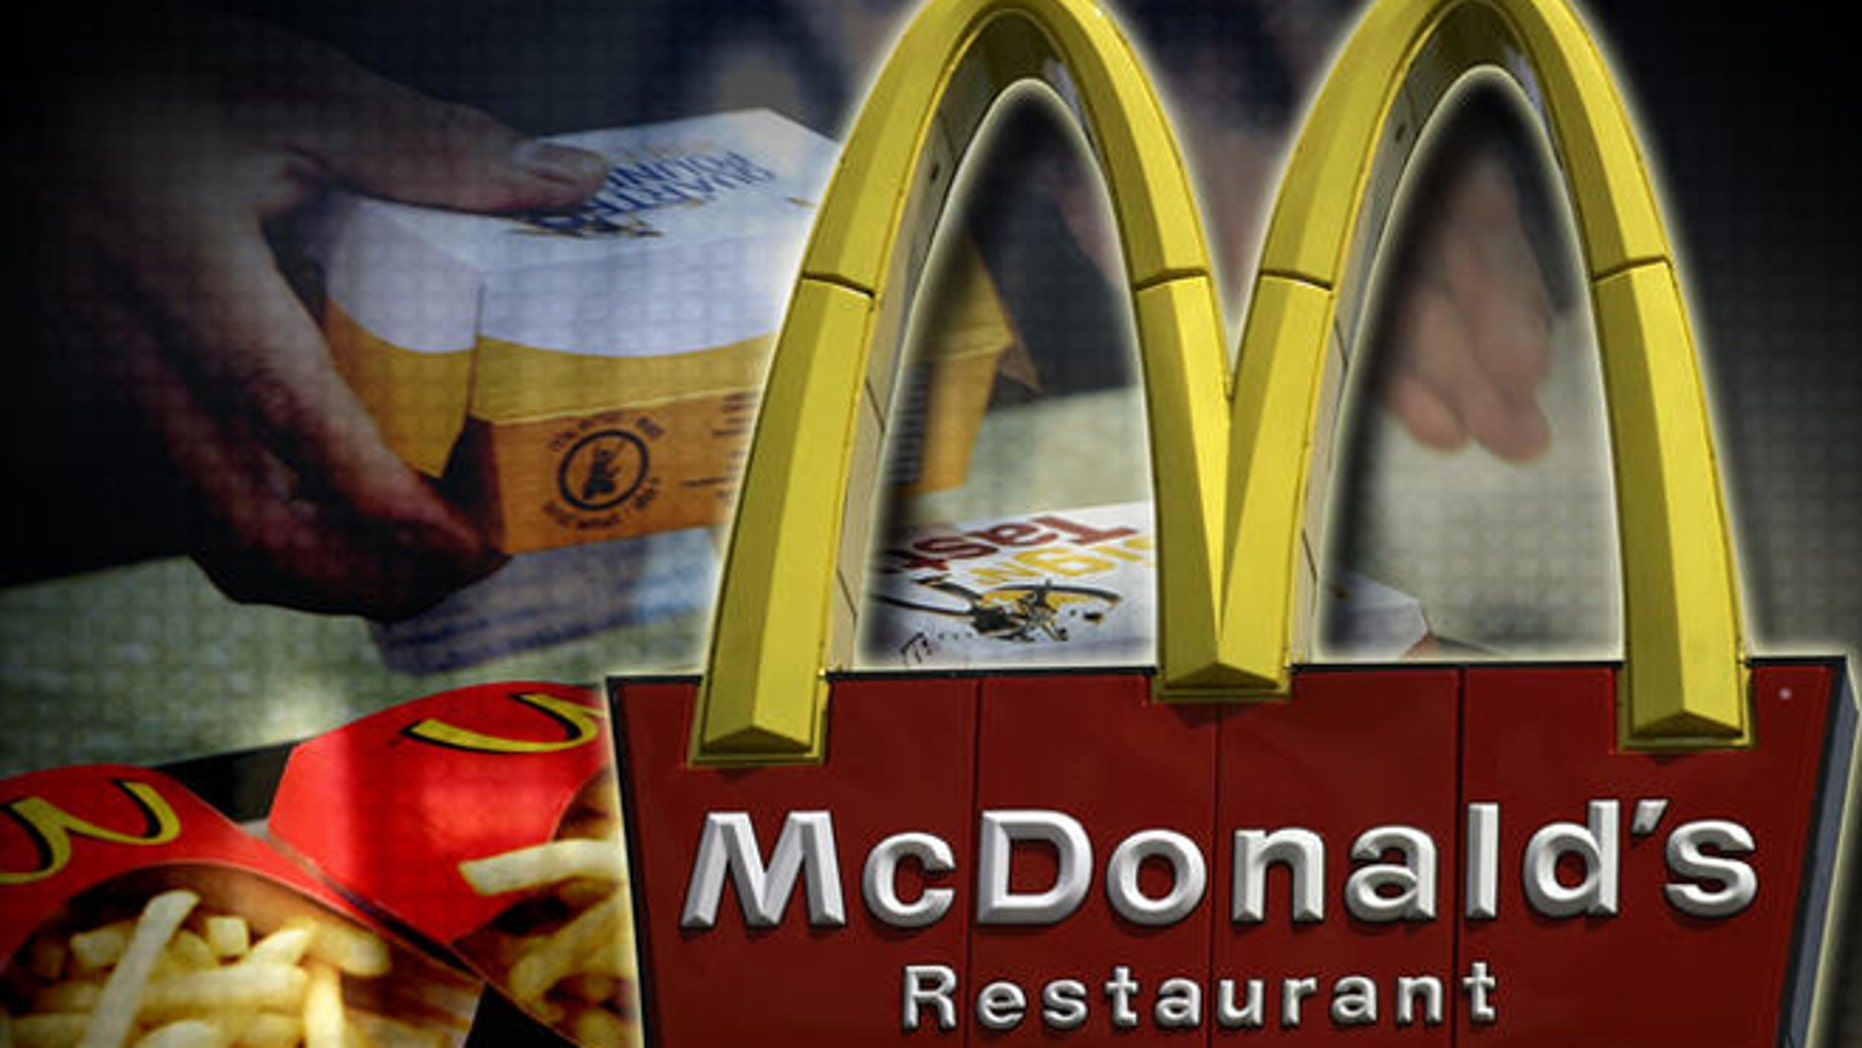 A McDonald's restaurant sign is seen in Tonawanda, N.Y., Monday, April 21, 2008.  McDonald's Corp. said Tuesday that its first-quarter profit rose 24 percent as the fast food company benefited from the weak U.S. dollar and strong global sales. (AP Photo/David Duprey)